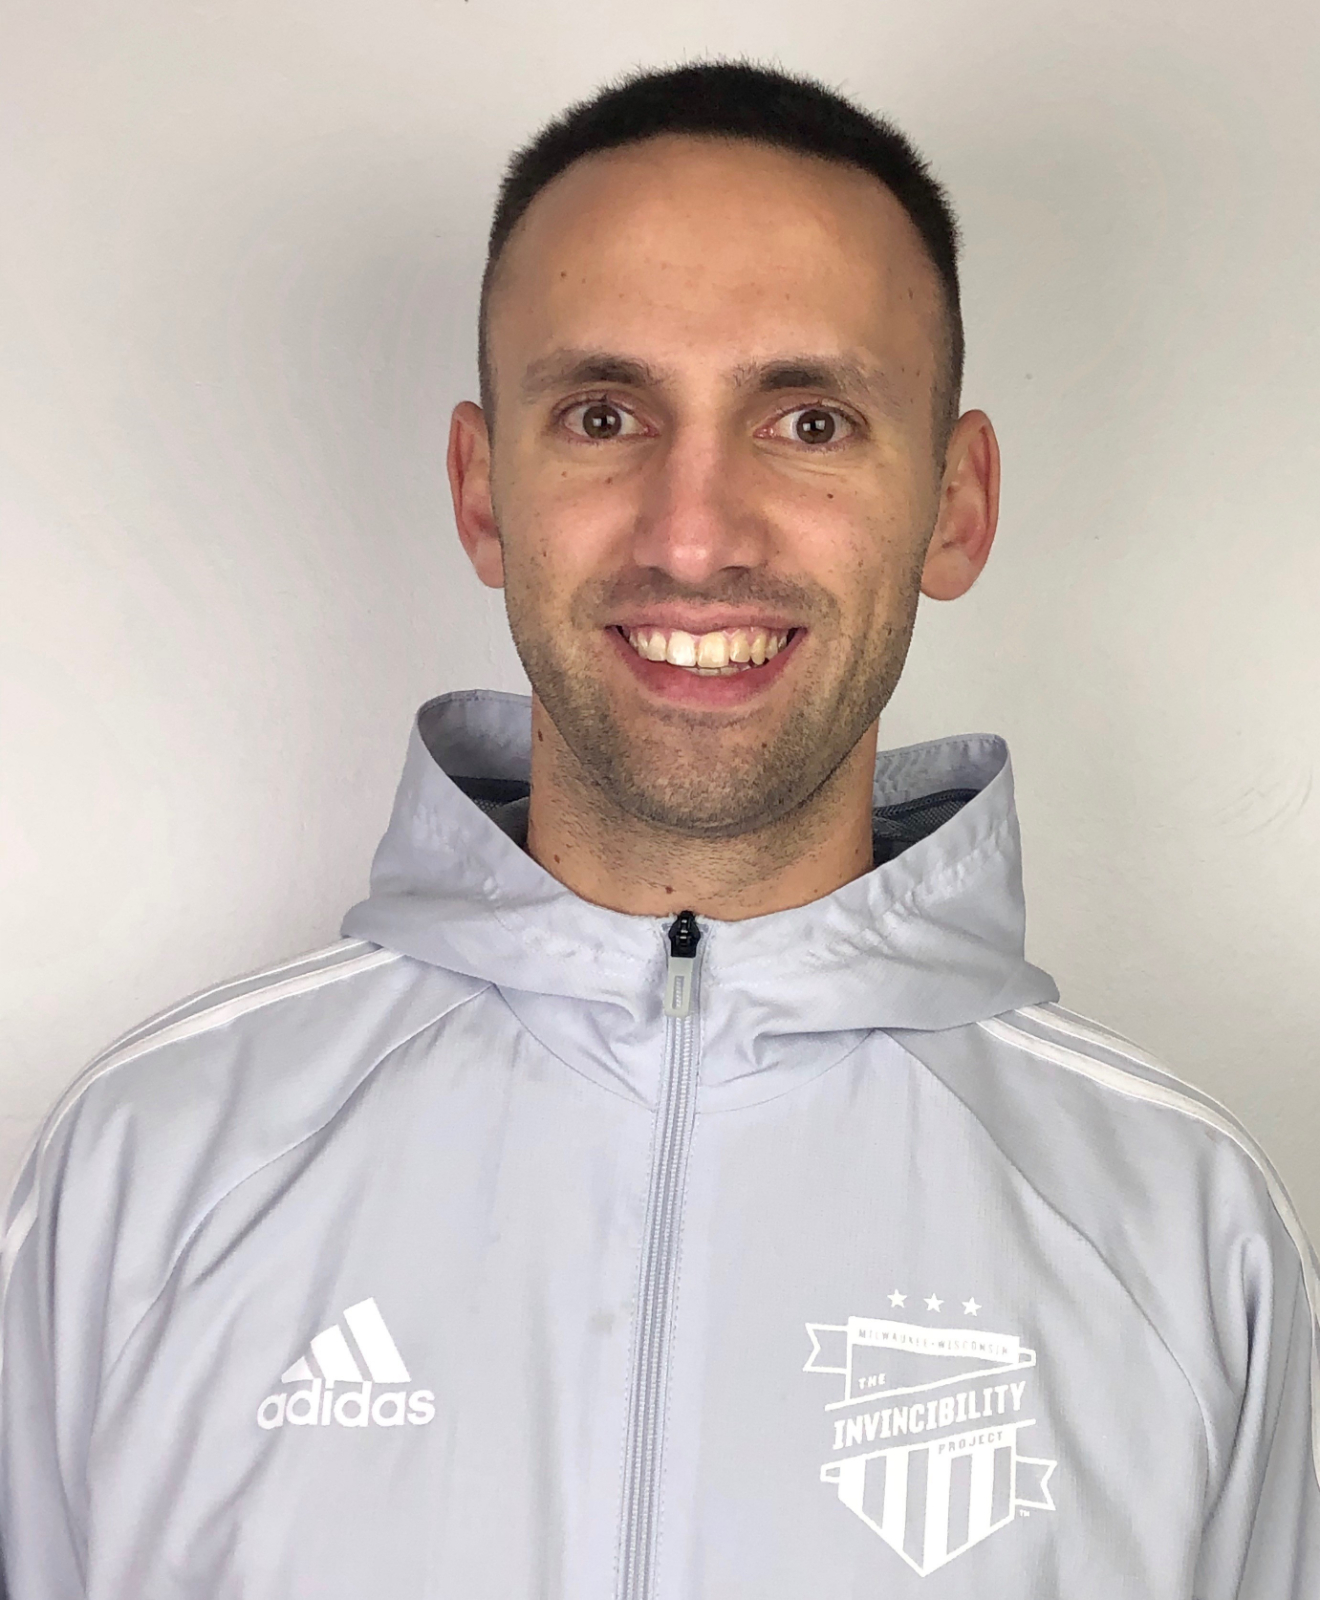 Welcome Peter Sanger as Head Coach for Girls Soccer